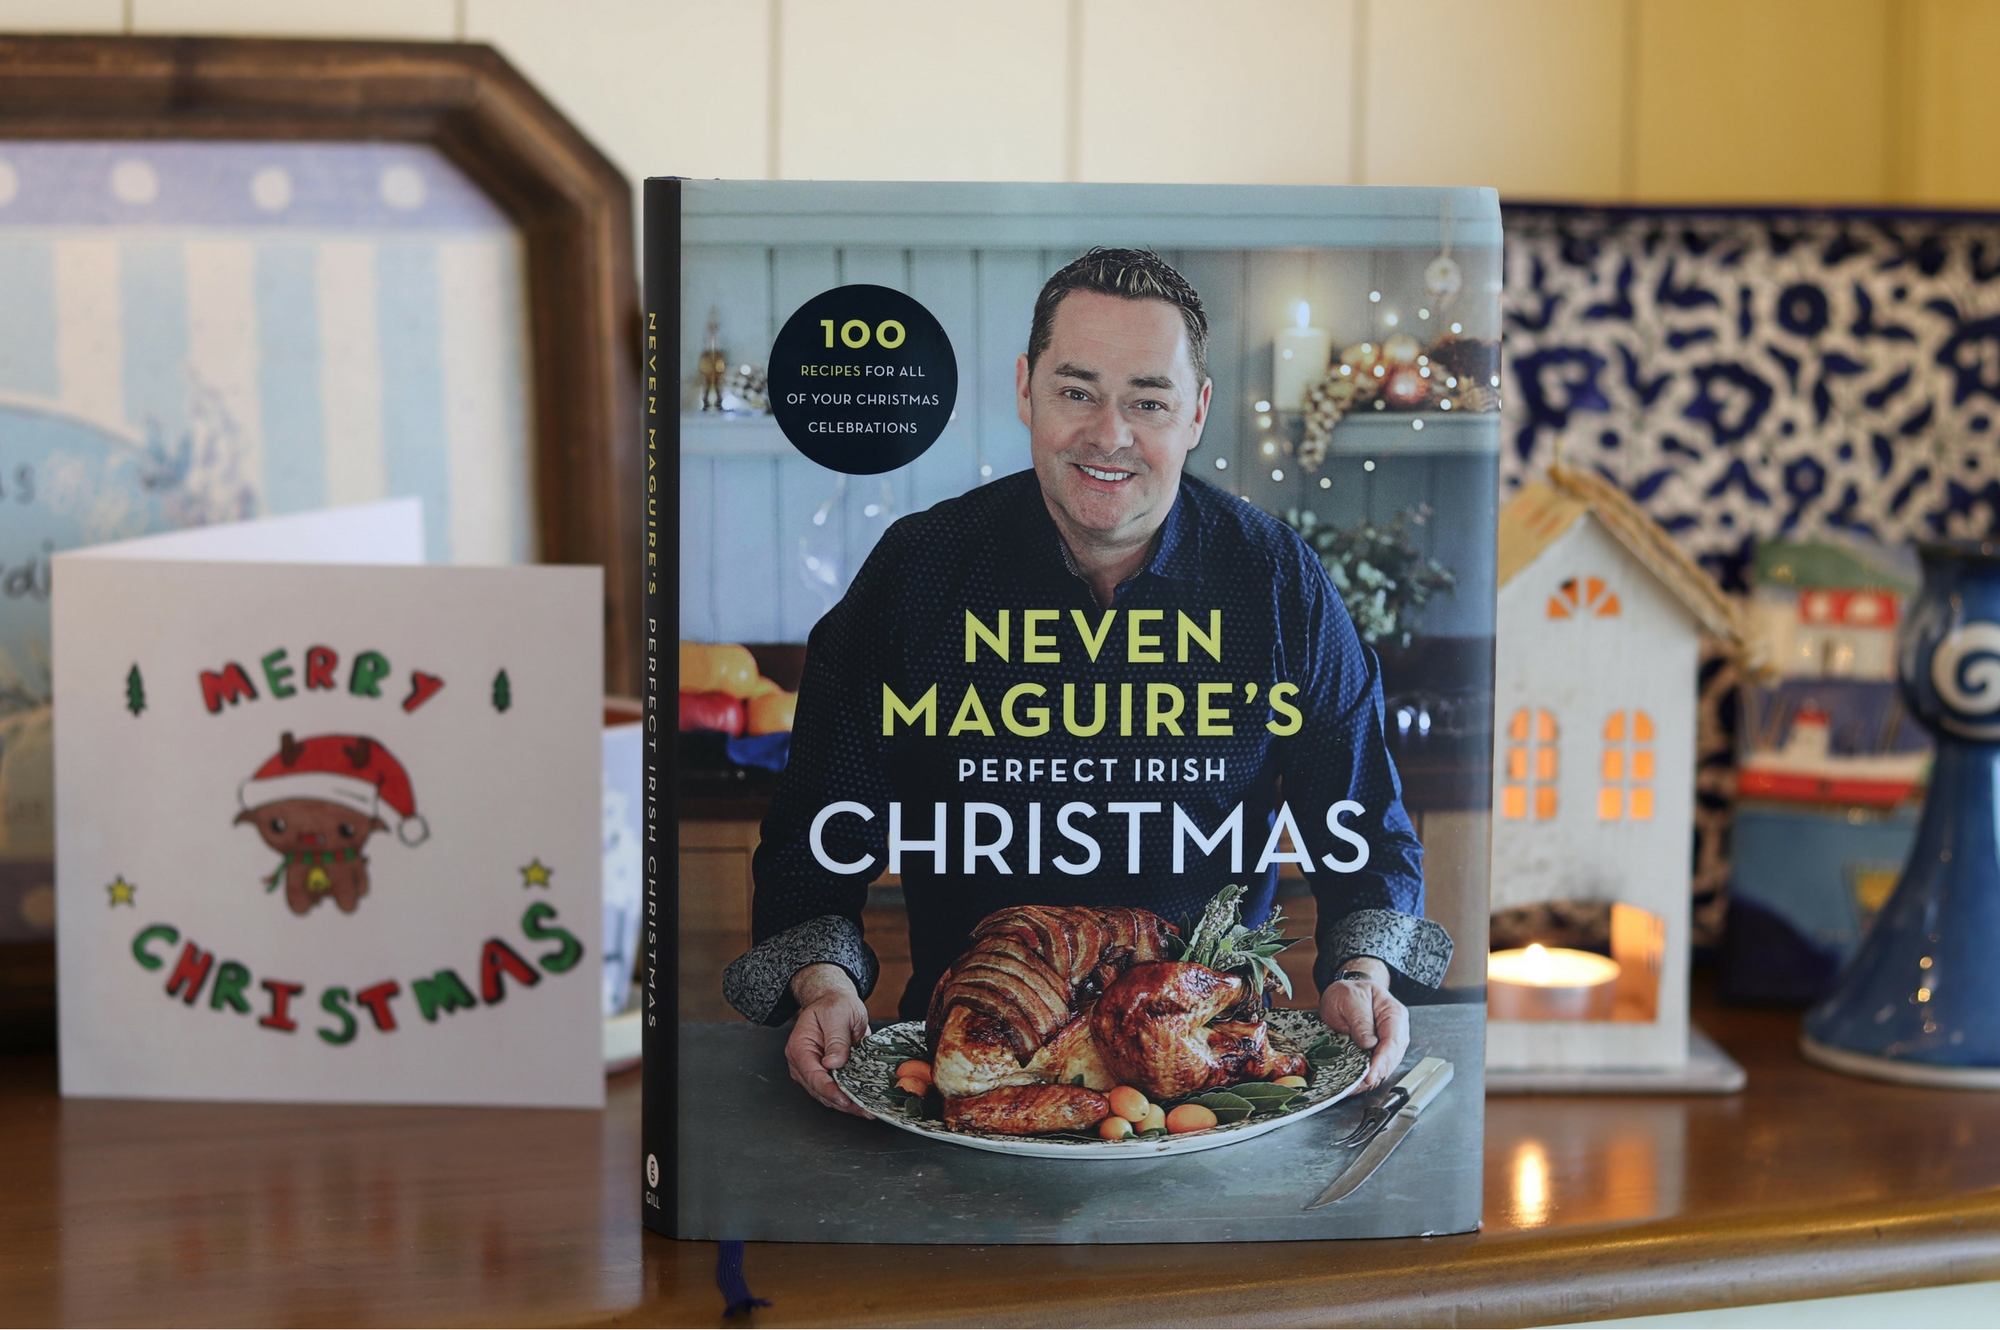 Saucepan Kids reviews Neven Maguire's Perfect Irish Christmas and Giveaway